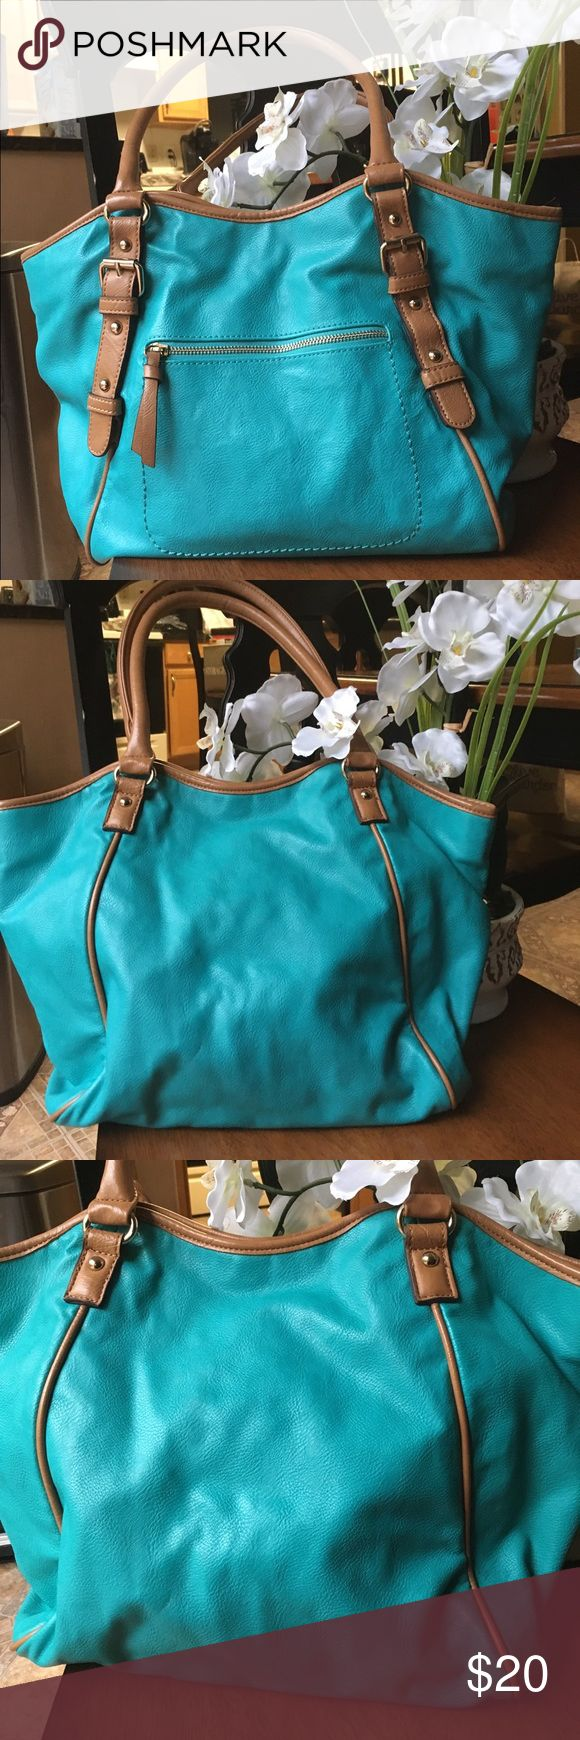 Teal Tote Use this beautiful real tote for anything that you need to load up a lot of stuff. Including school, travel, or work. This is great perfect tote! Open tote with snap closure. *Minor black mark on the inside, as seen in photo #8.*  ✔️Bundle discounts!  ✔️Same or Next day shipping! (Mon-Fri) Aldo Bags Totes